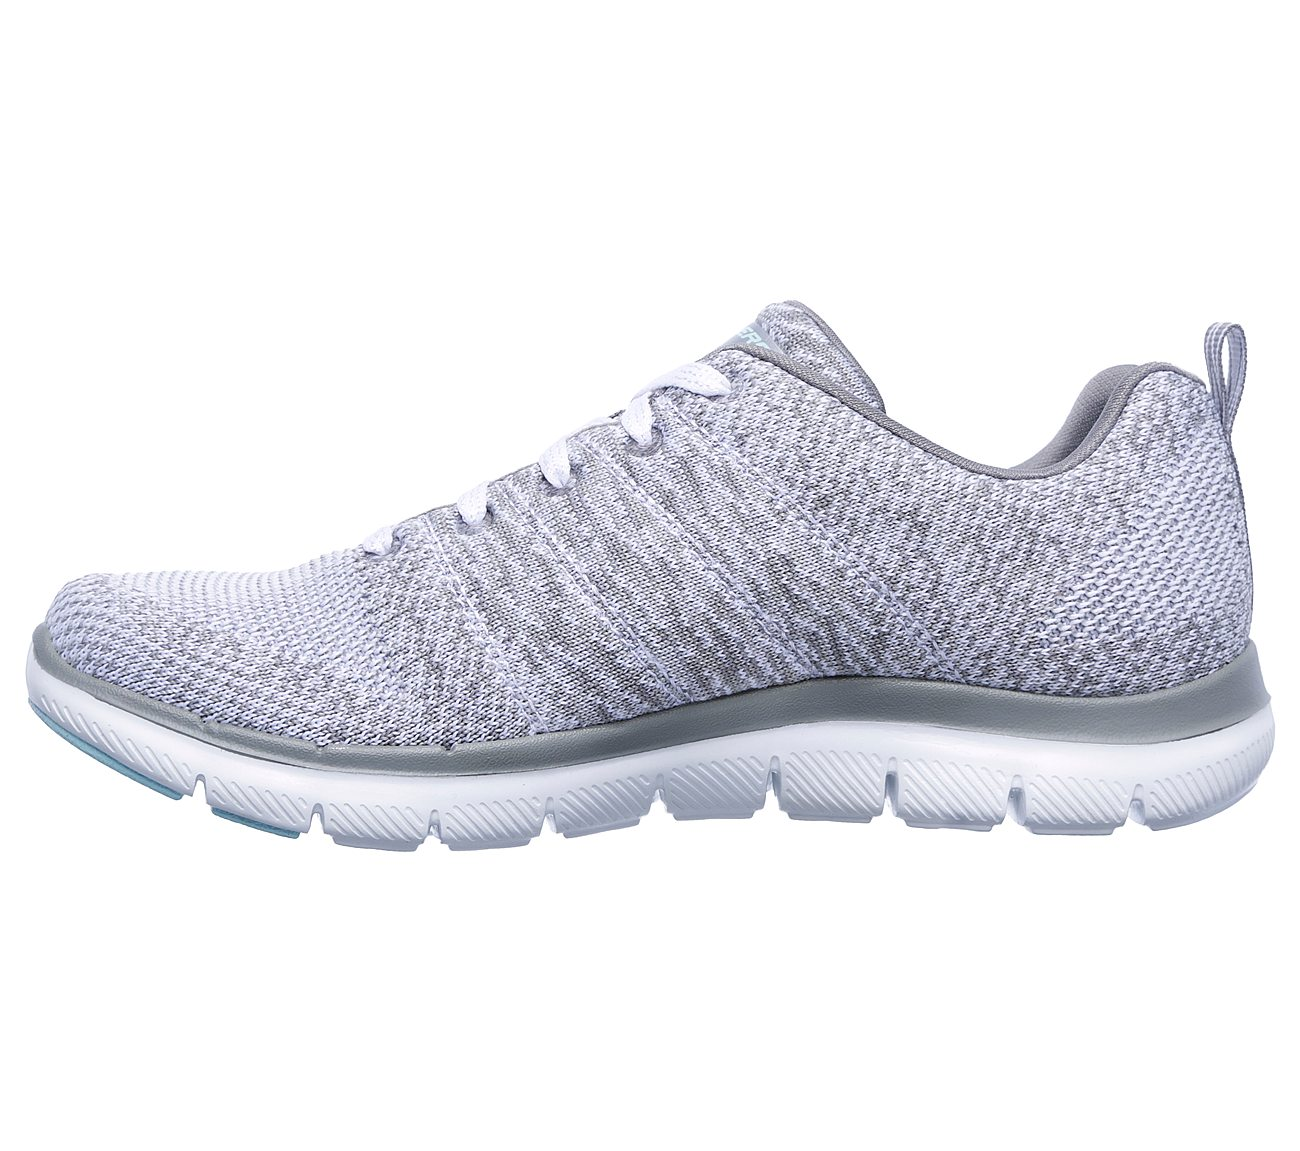 59cc62fa1900 Buy SKECHERS Flex Appeal 2.0 - High Energy Flex Appeal Shoes only  95.00